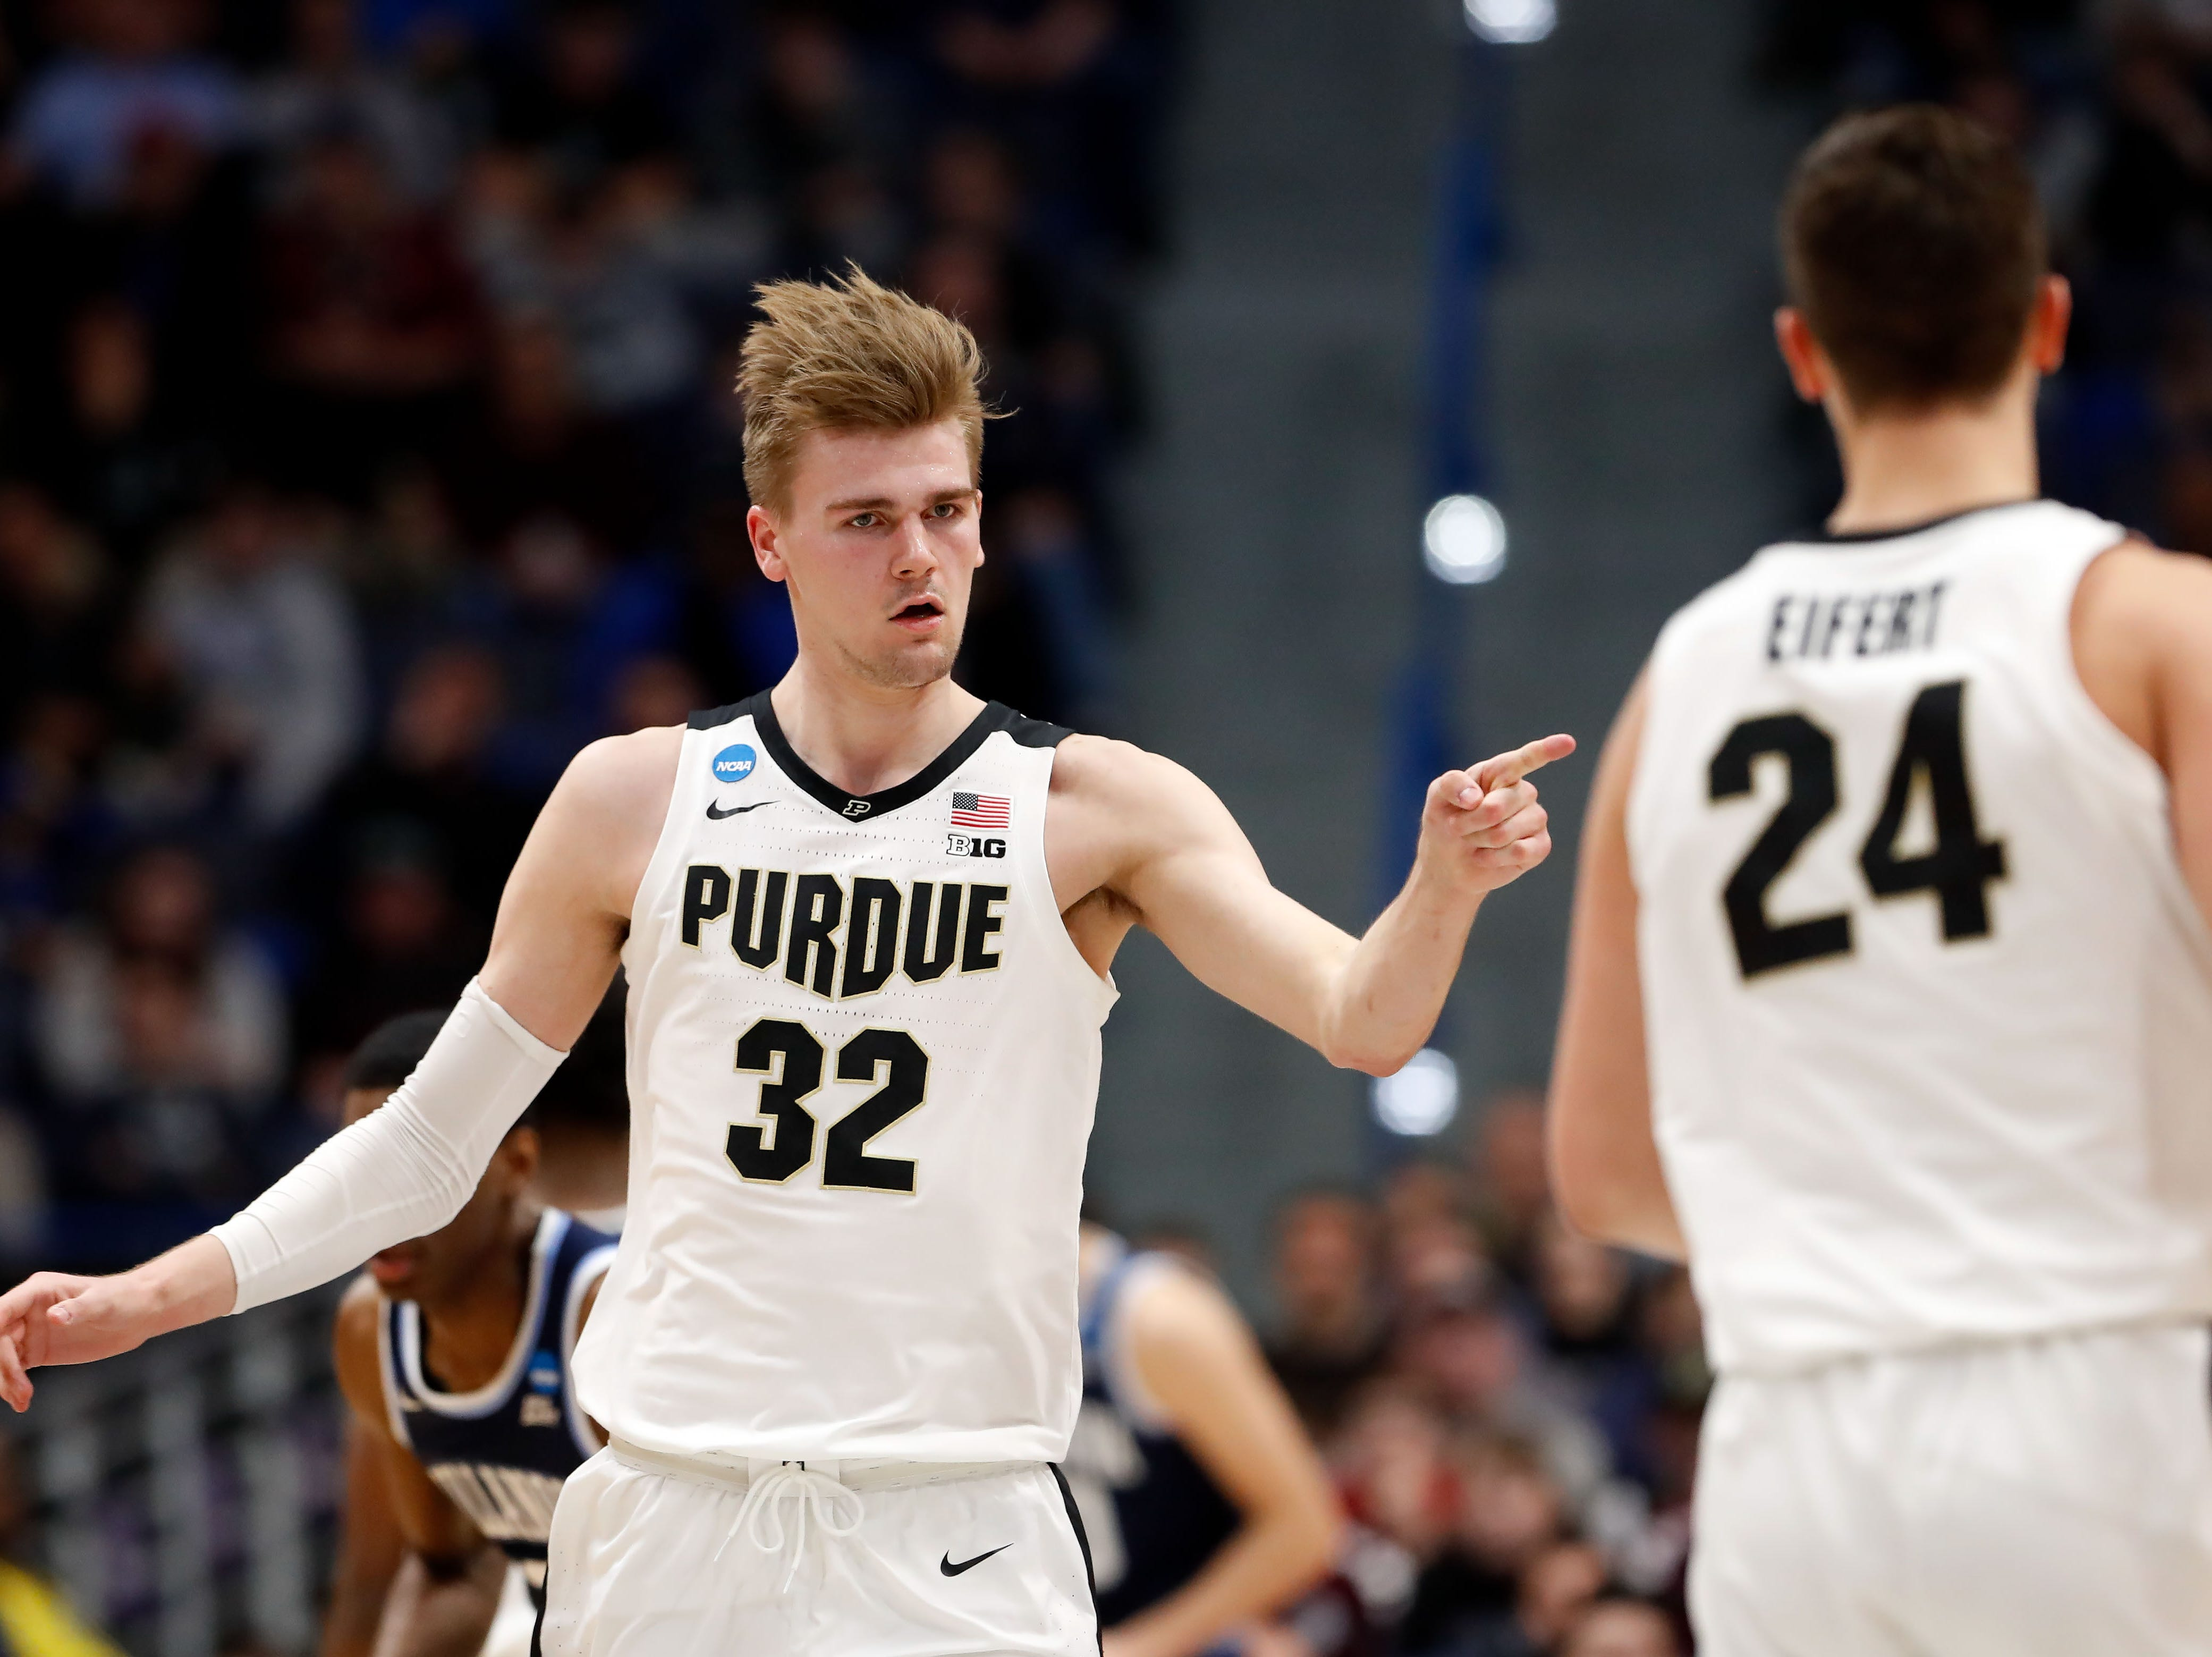 Mar 23, 2019; Hartford, CT, USA; Purdue Boilermakers center Matt Haarms (32) points to forward Grady Eifert (24) after a score against the Villanova Wildcats during the second half of a game in the second round of the 2019 NCAA Tournament at XL Center. Mandatory Credit: David Butler II-USA TODAY Sports